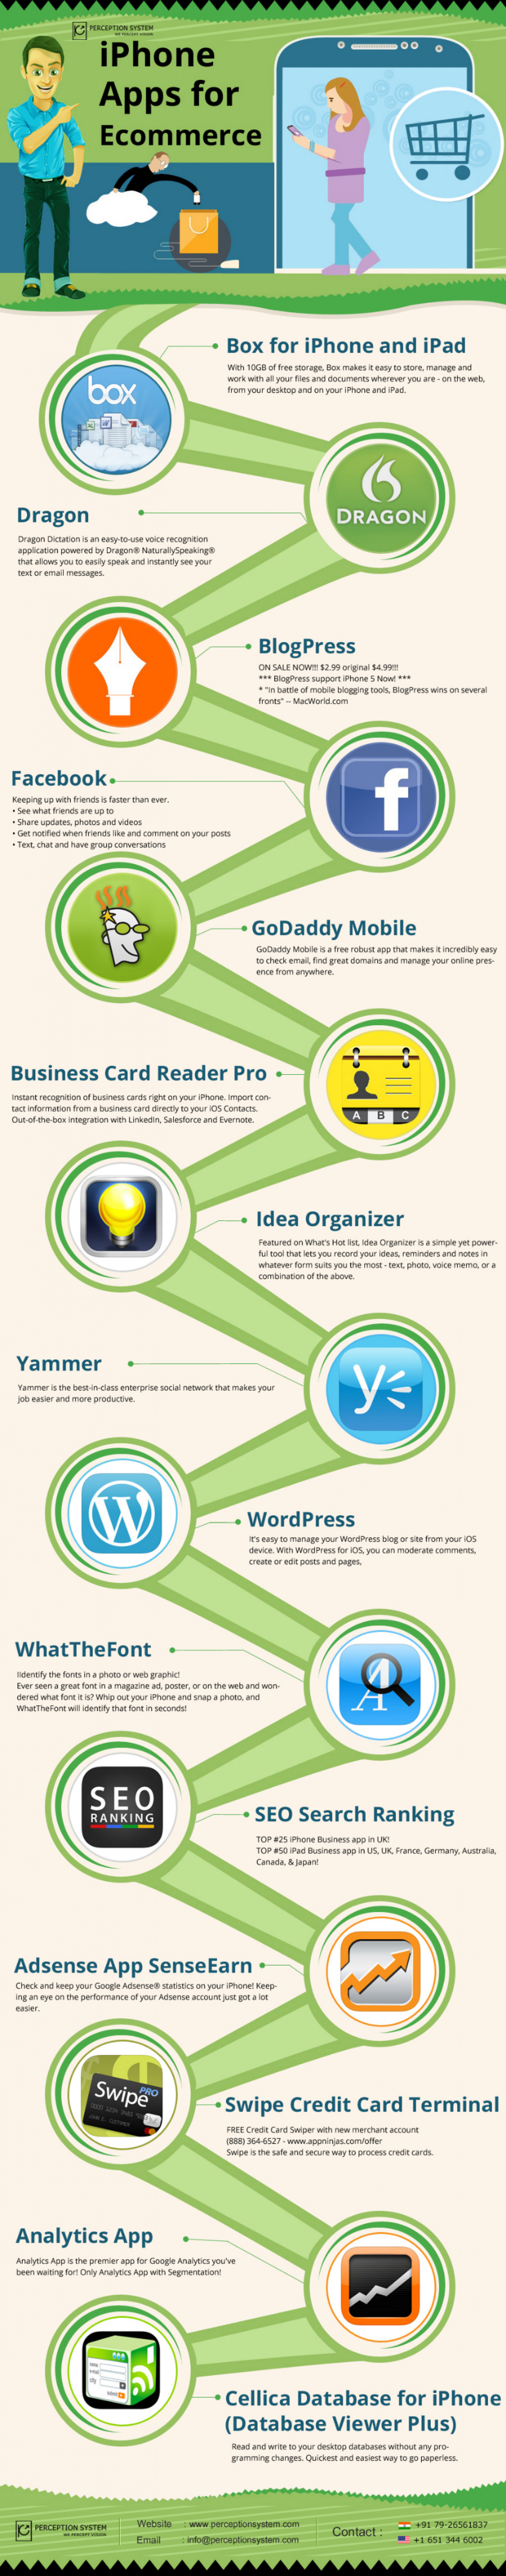 iPhone Apps for Ecommerce Infographic